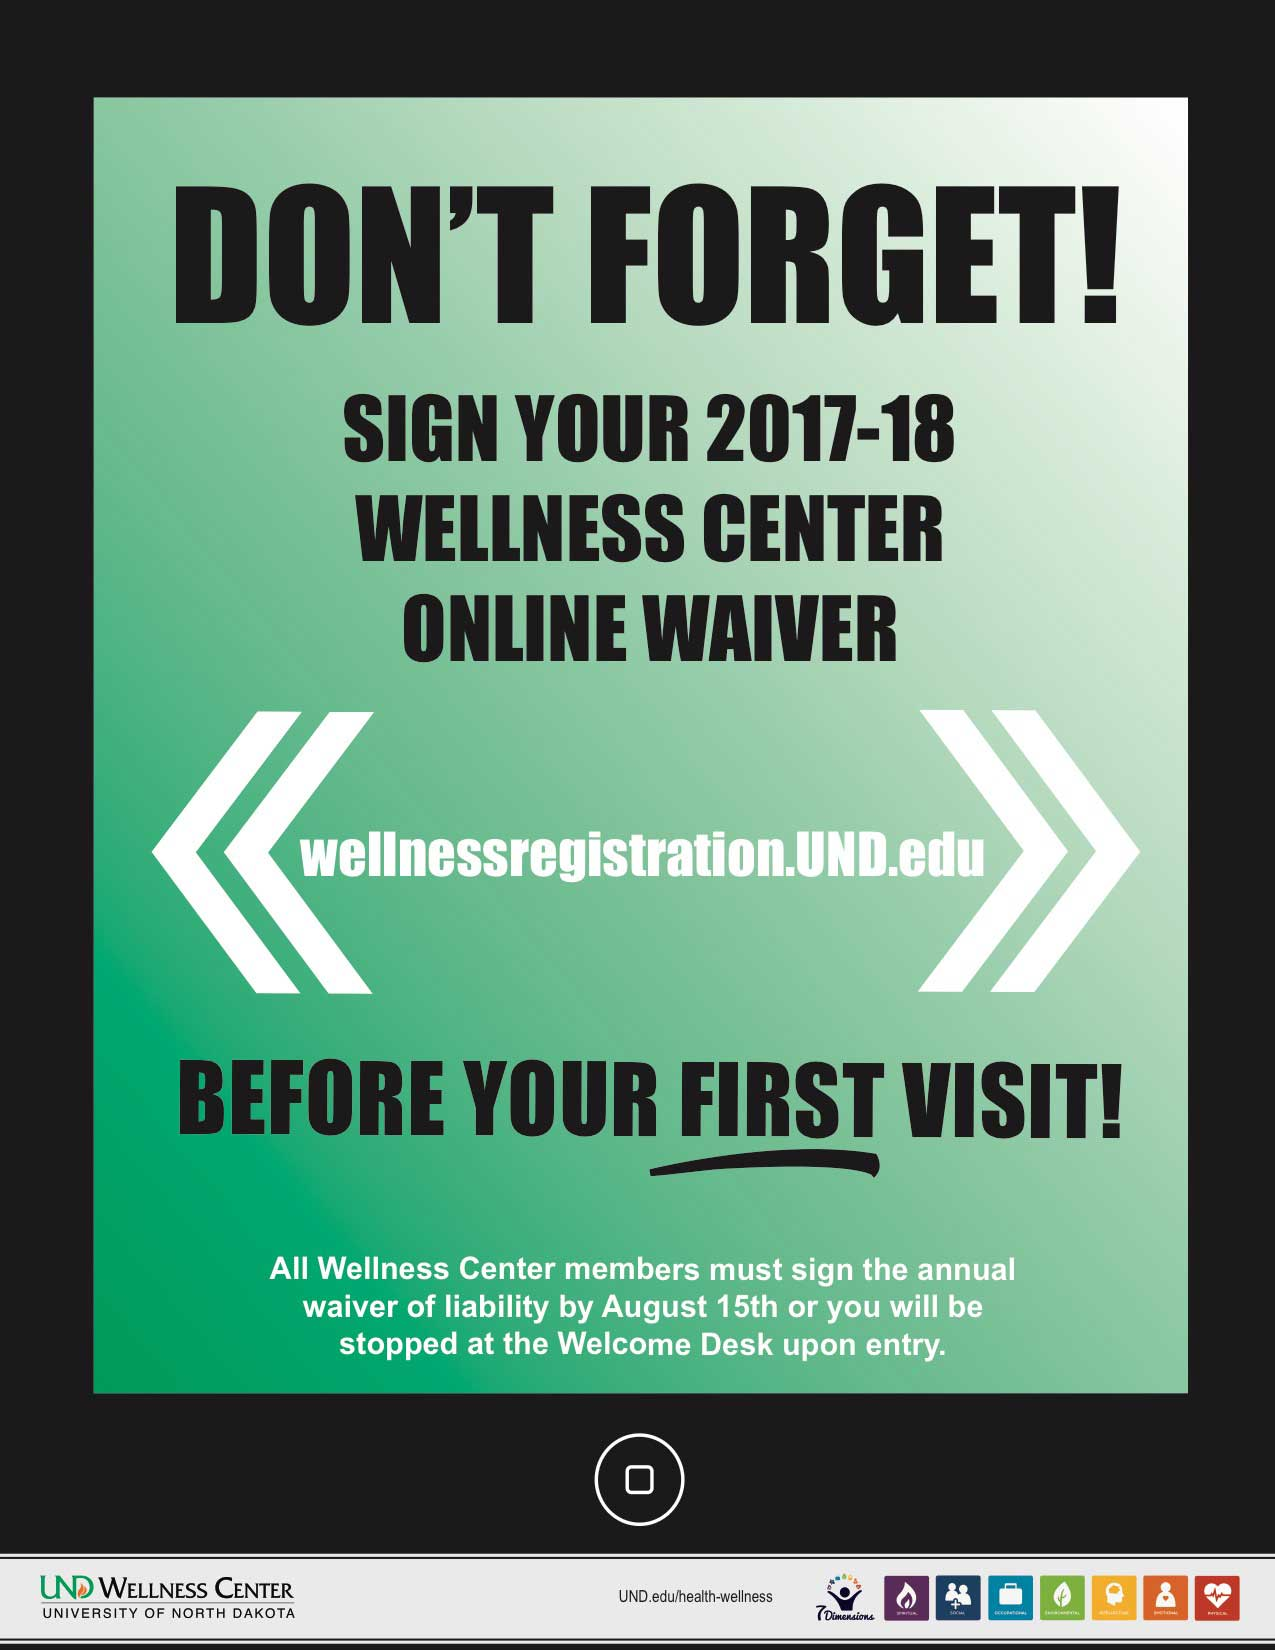 DON'T FORGET! SIGN YOUR 2017-18 WELLNESS CENTER ONLINE WAIVER wellnessregistration.UND.edu All Wellness Center members must sign the annual waiver of liability by August 15th or you will be stopped at the Welcome Desk upon entry. UND.edu/health-wellness BEFORE YOUR FIRST VISIT!